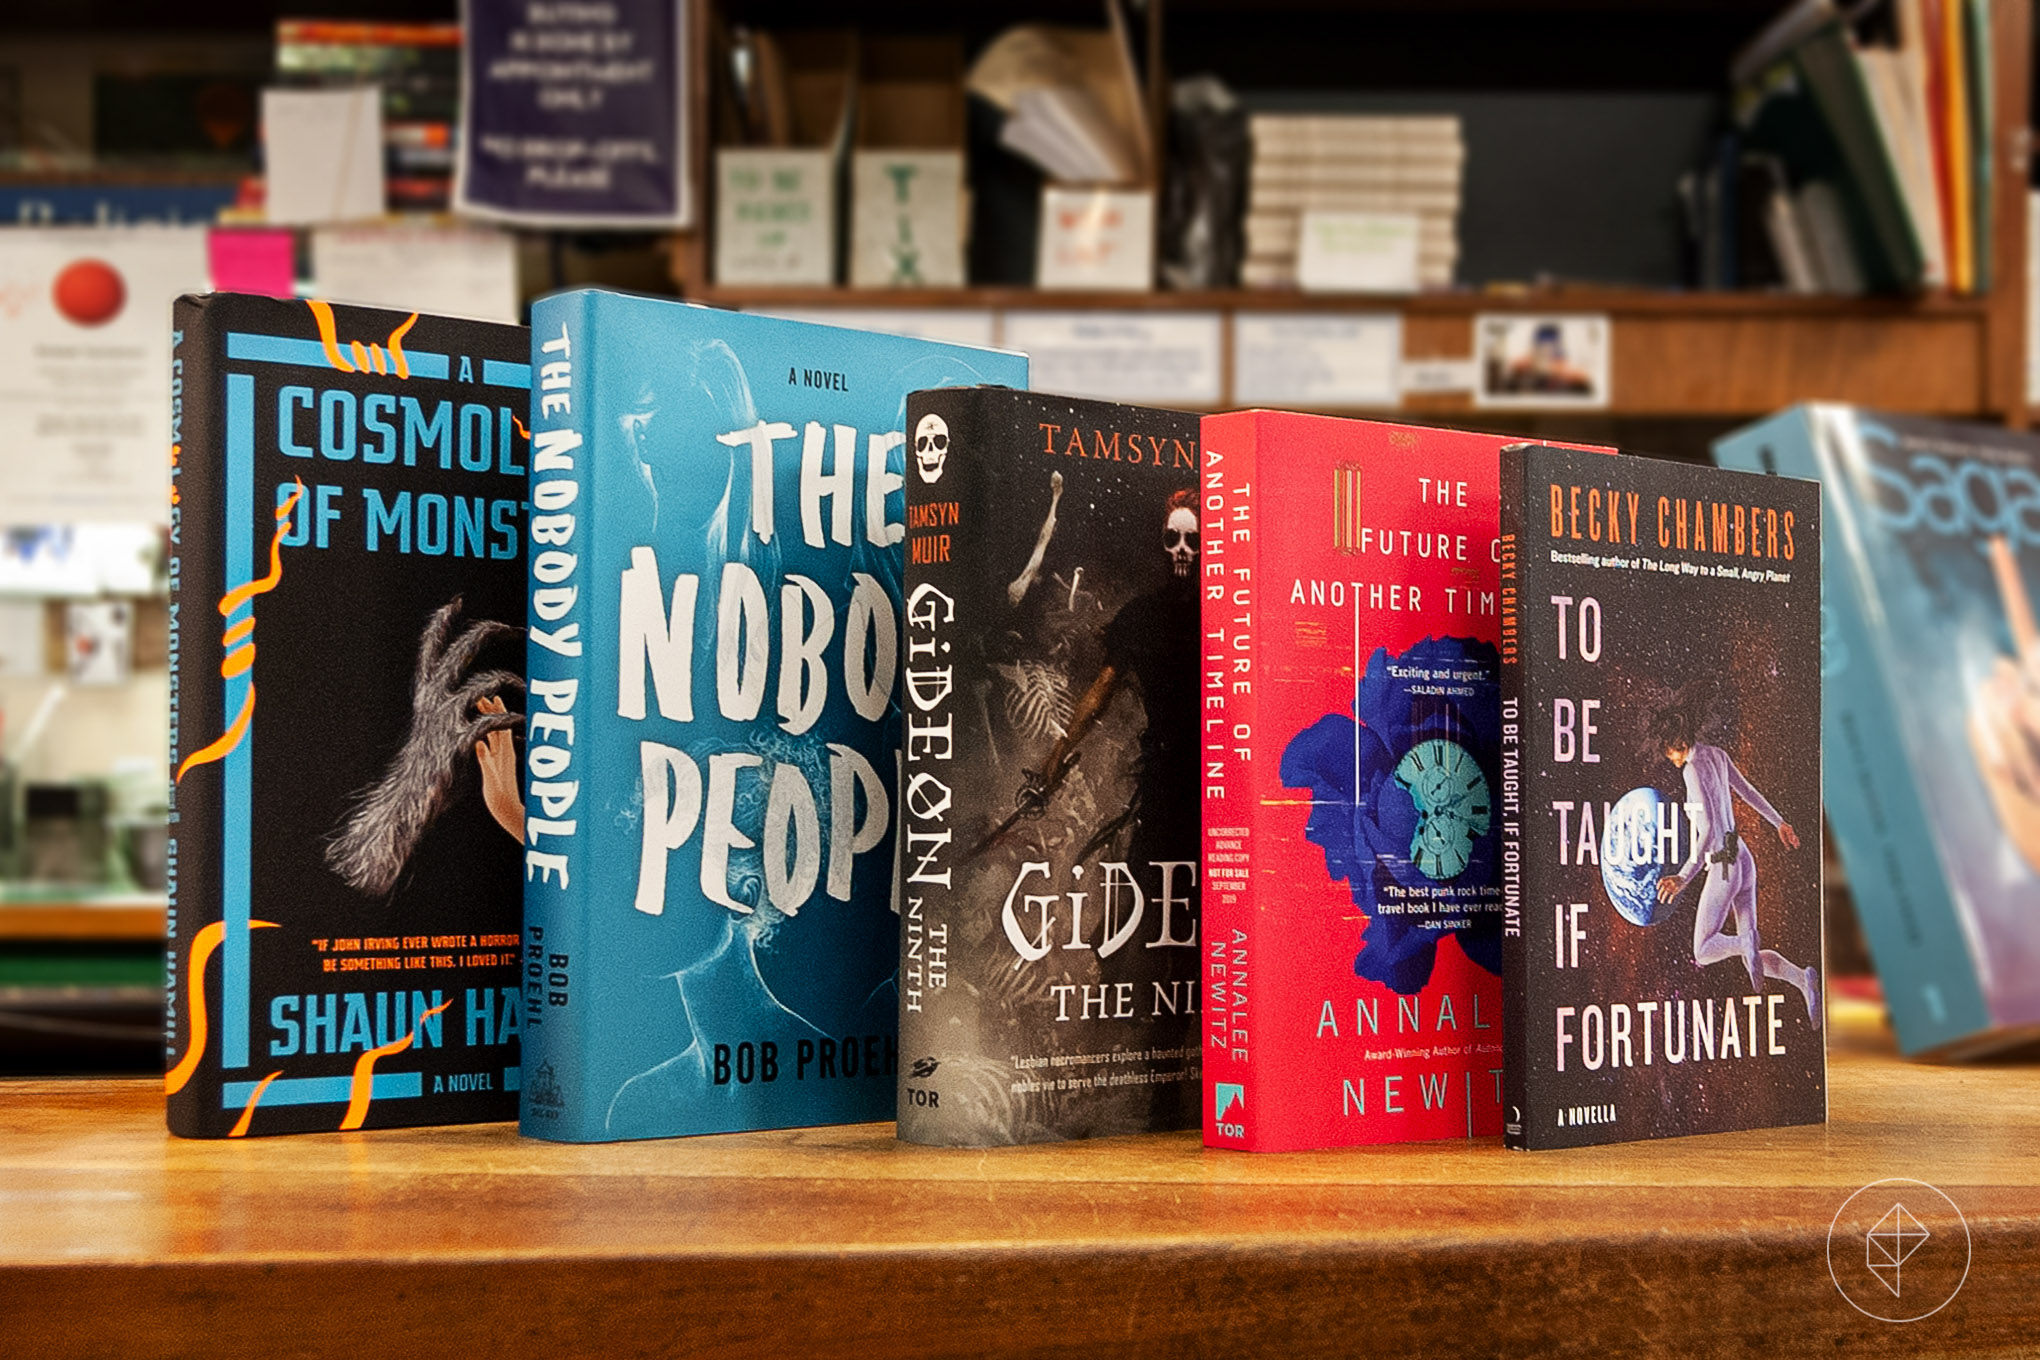 13 New science fiction and fantasy books to check out this September